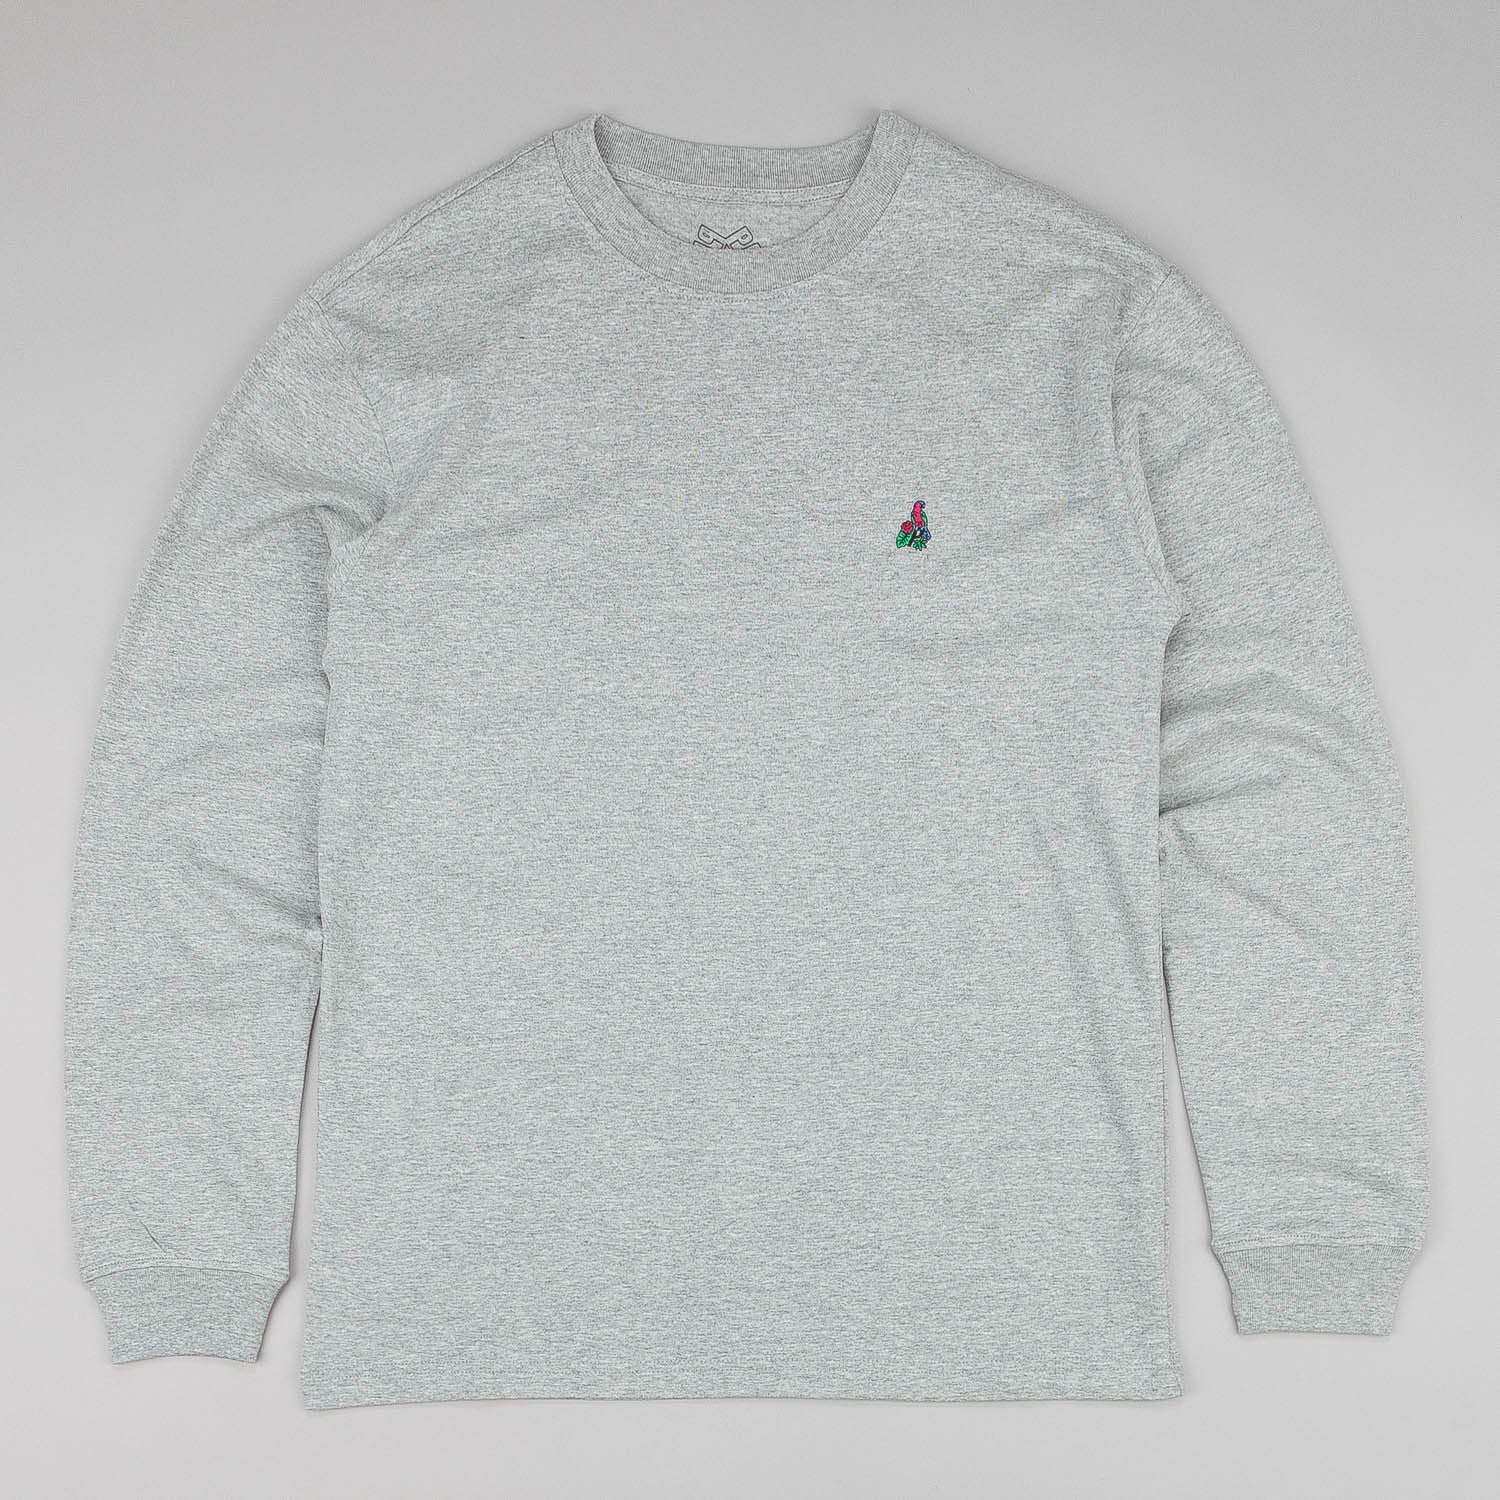 Palace Tropic L/S T-Shirt